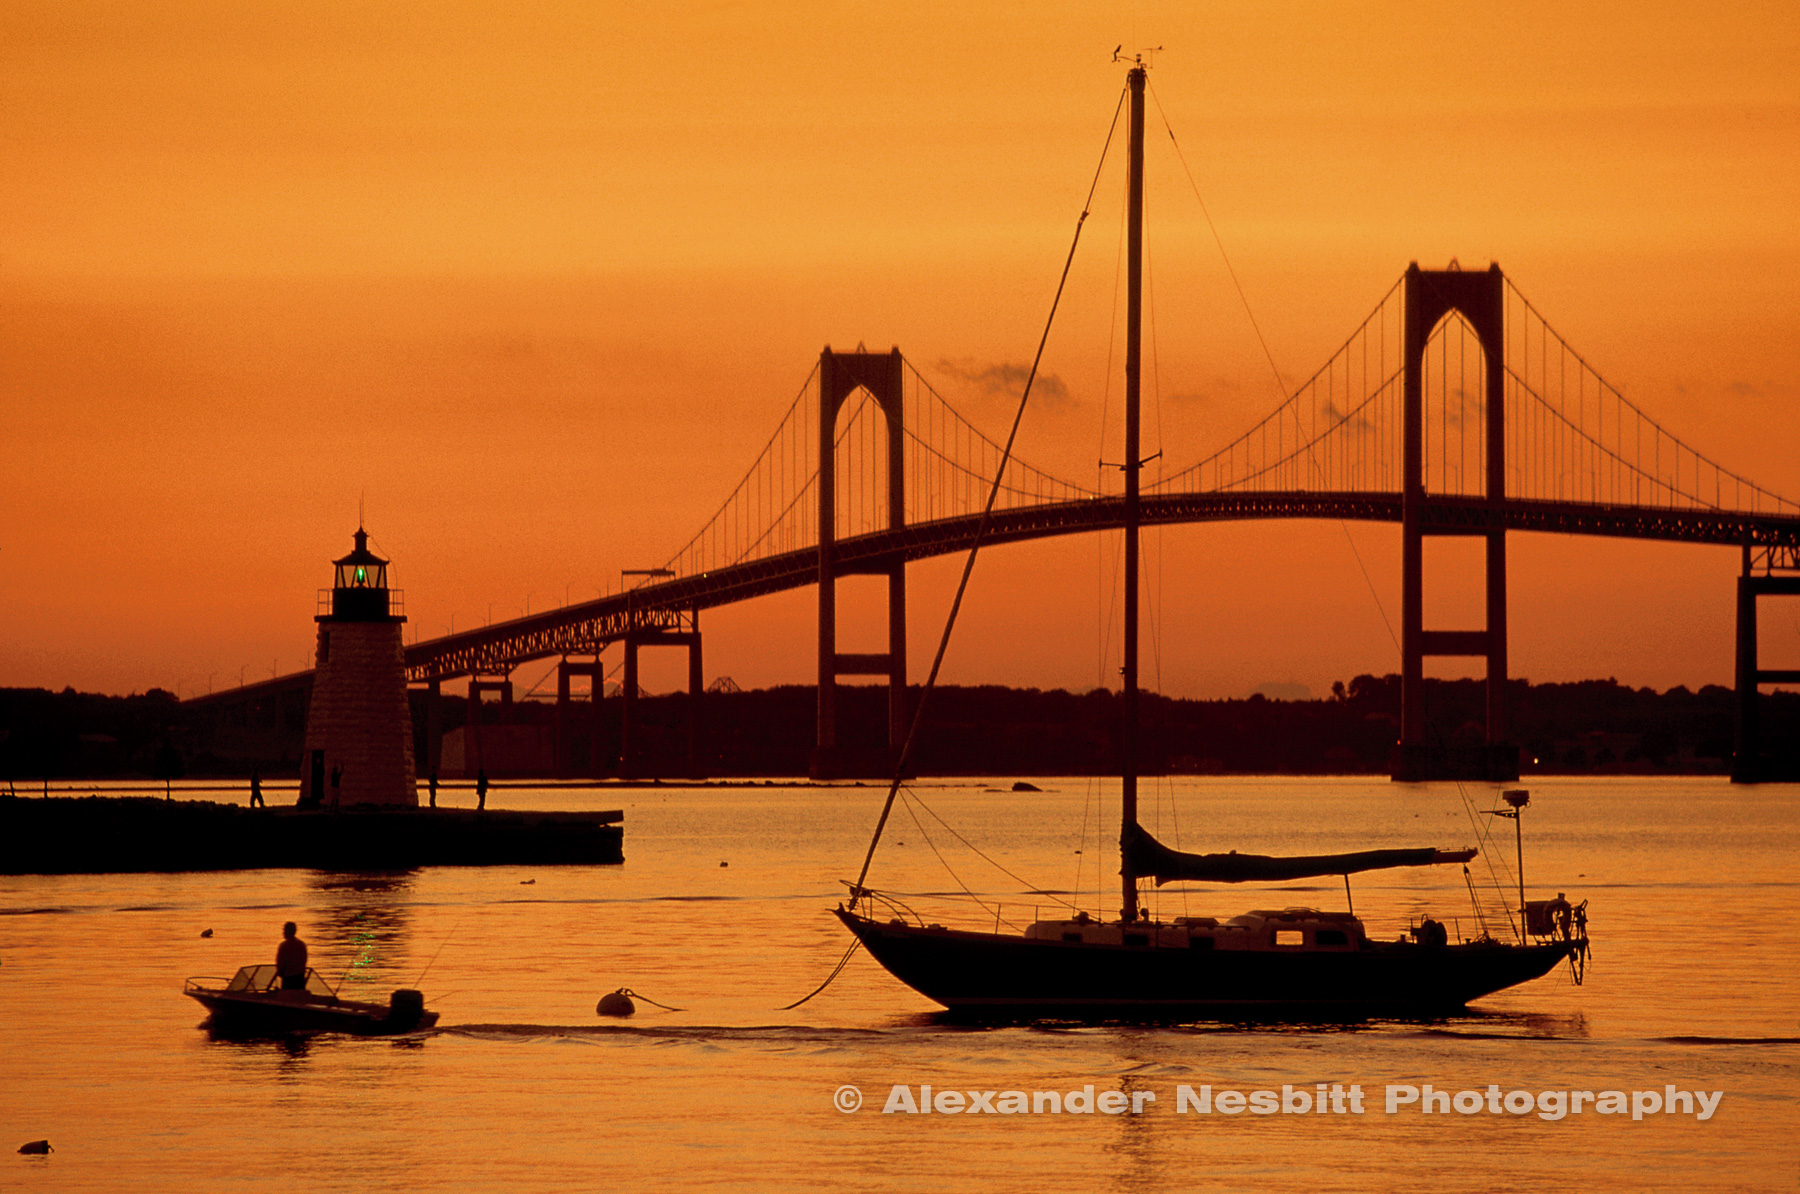 USA, Newport, RI - Orange sunset colors everything - the Newport bridge, the Green light from the lighthouse on Goat Island and a boater passing through.